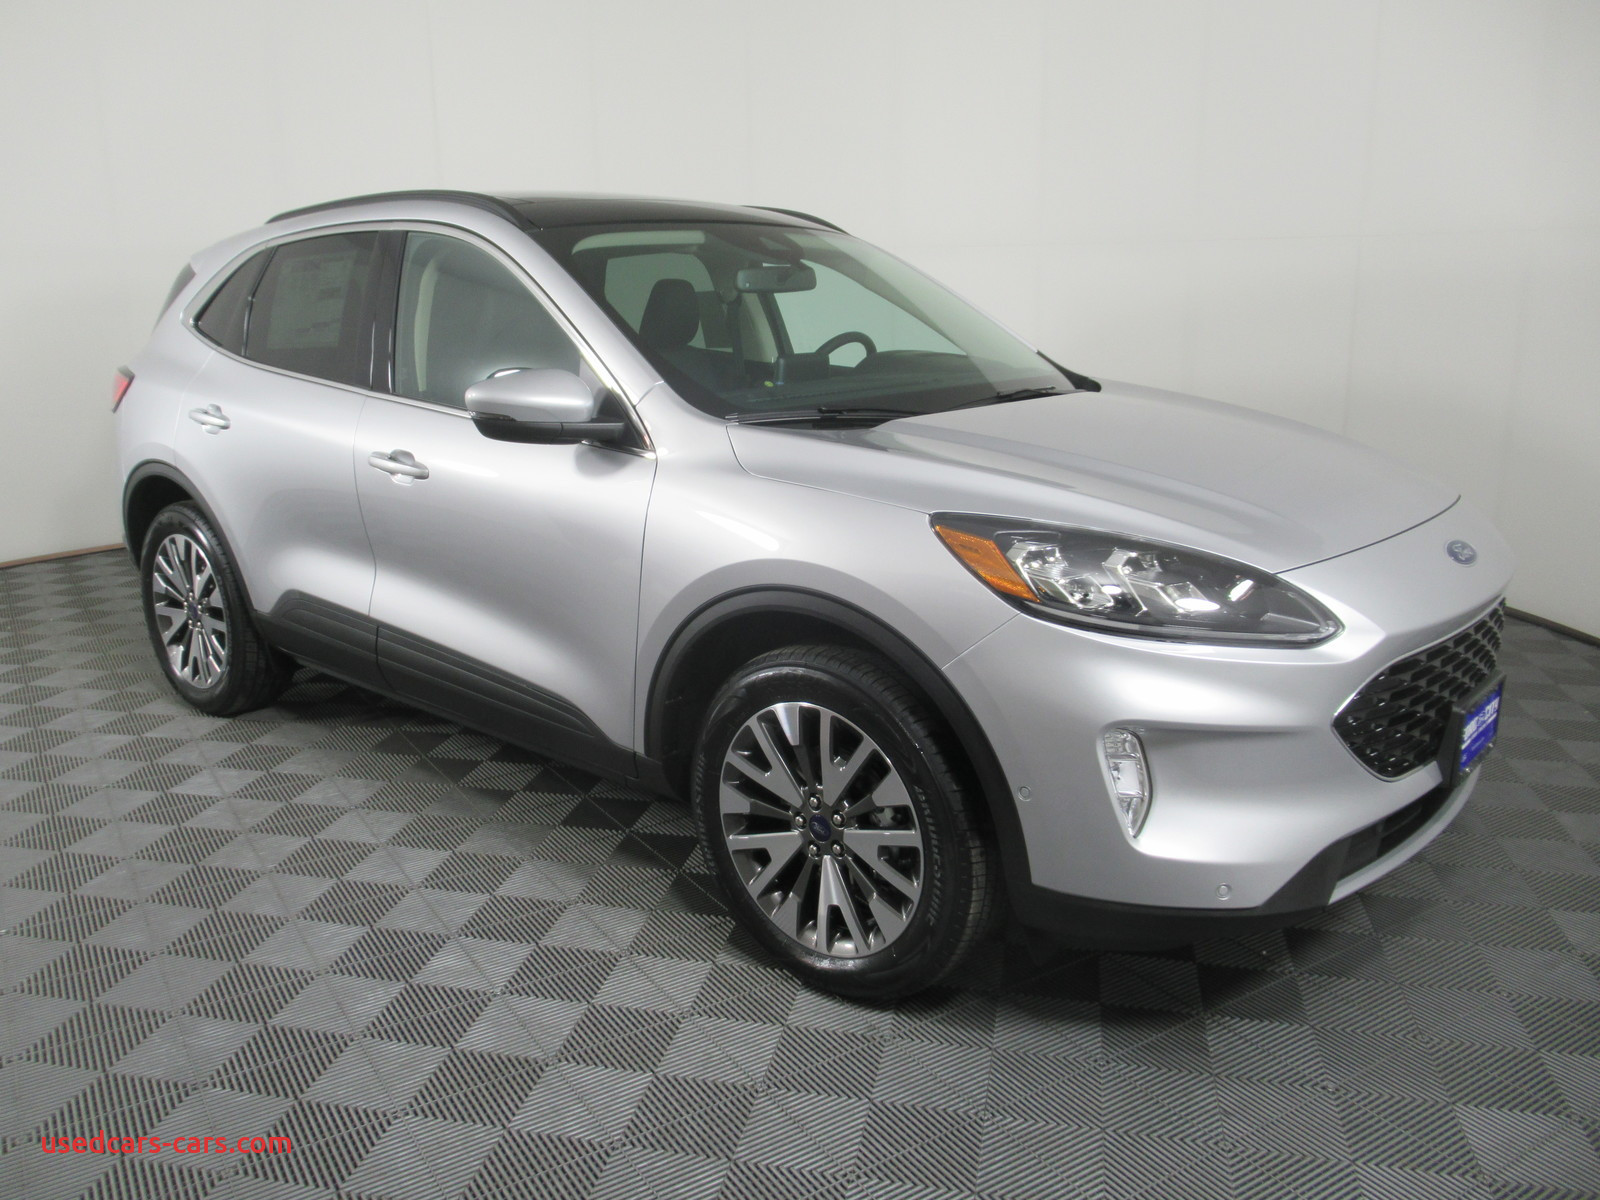 2020 ford Escape 2.0 Horsepower Best Of New 2020 ford Escape Titanium Awd Sport Utility In Savoy